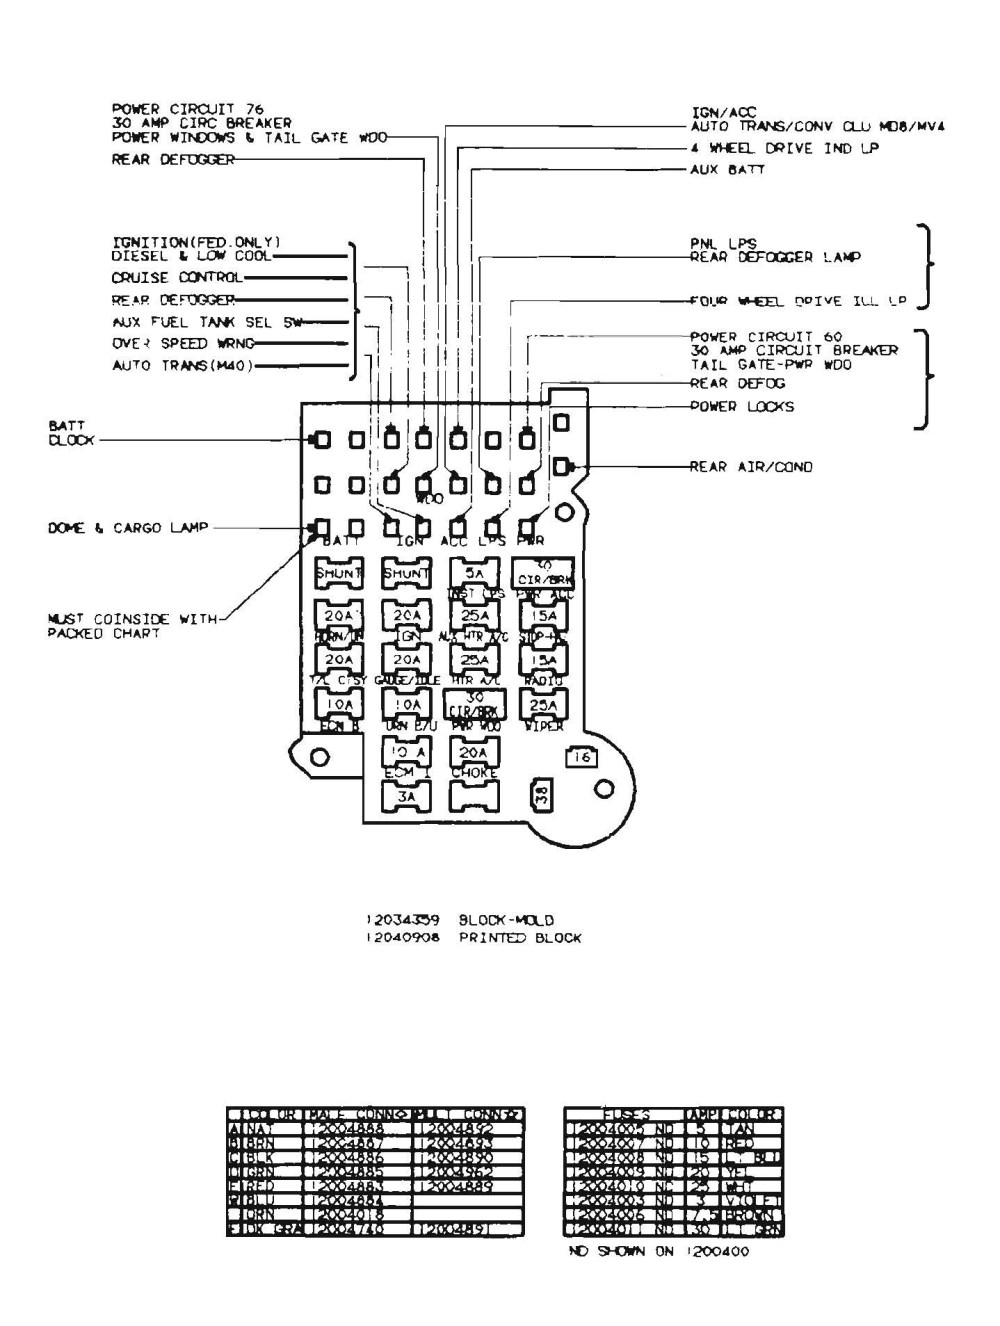 medium resolution of 1987 chevy truck fuse box diagram wiring diagram query 86 chevy c10 fuse box diagram 1986 chevy truck fuse block diagram